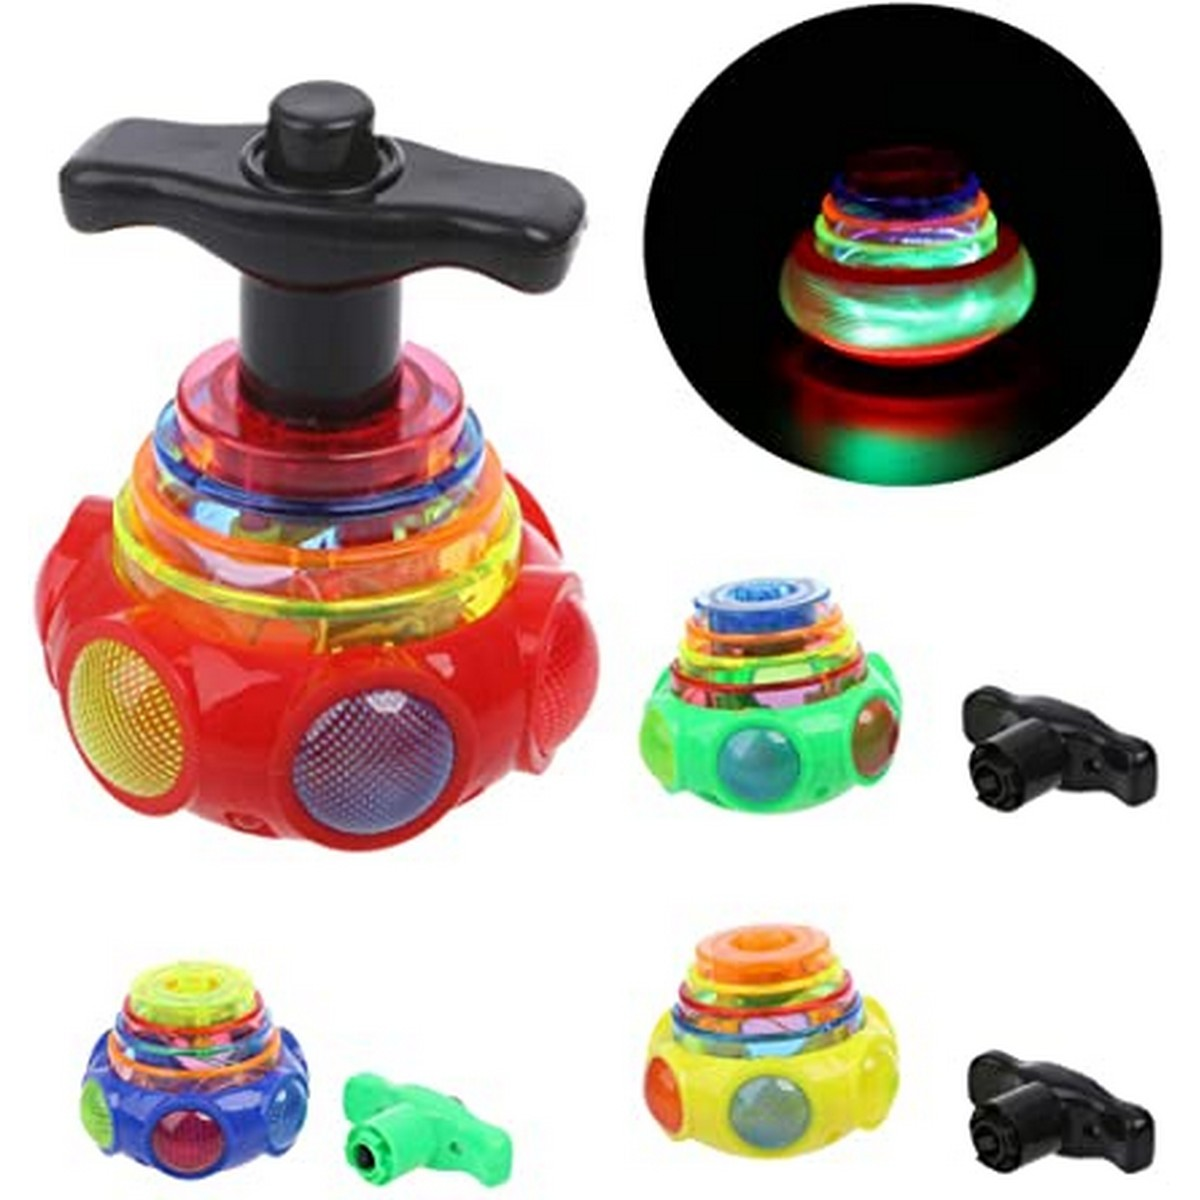 1 Flashing UFO Spinning Top Set with Light and Music For kids